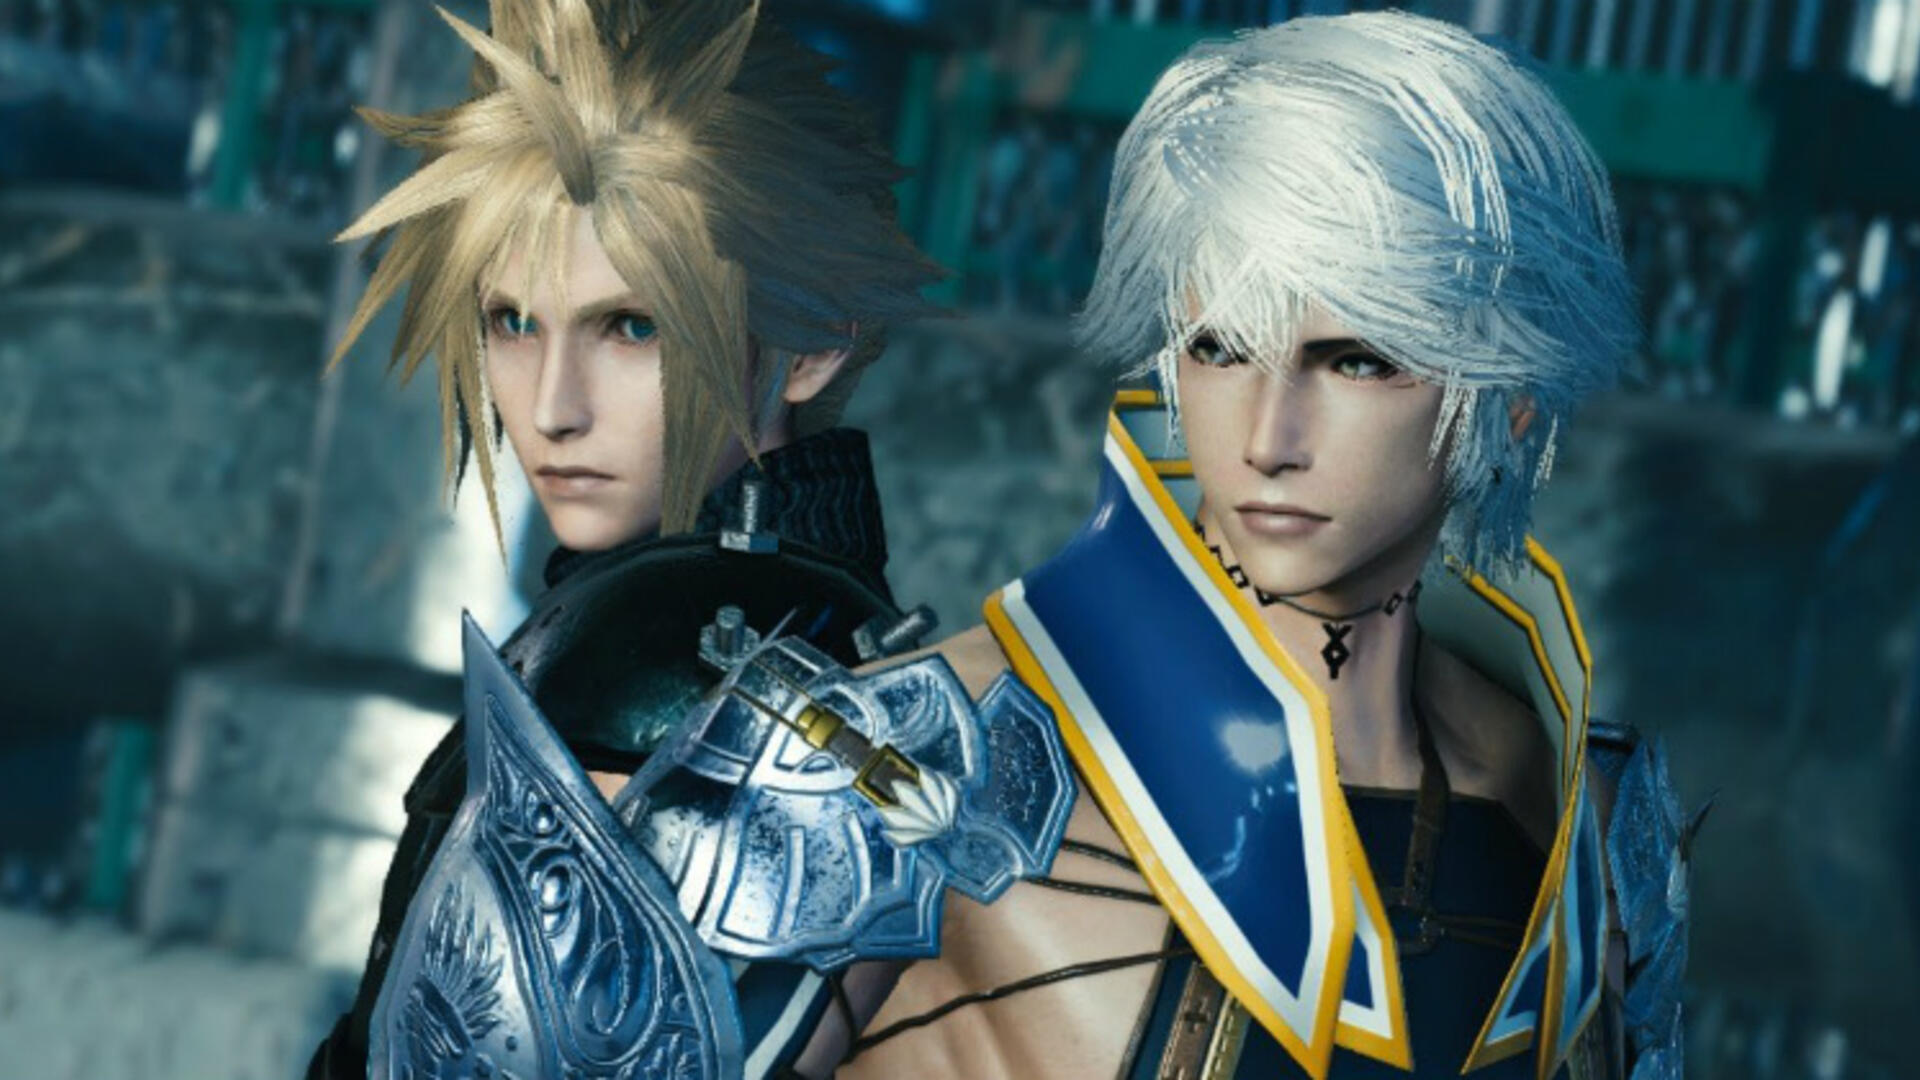 """Square Enix Wins on Mobile and PC, As Consoles See a """"Solid Start"""""""